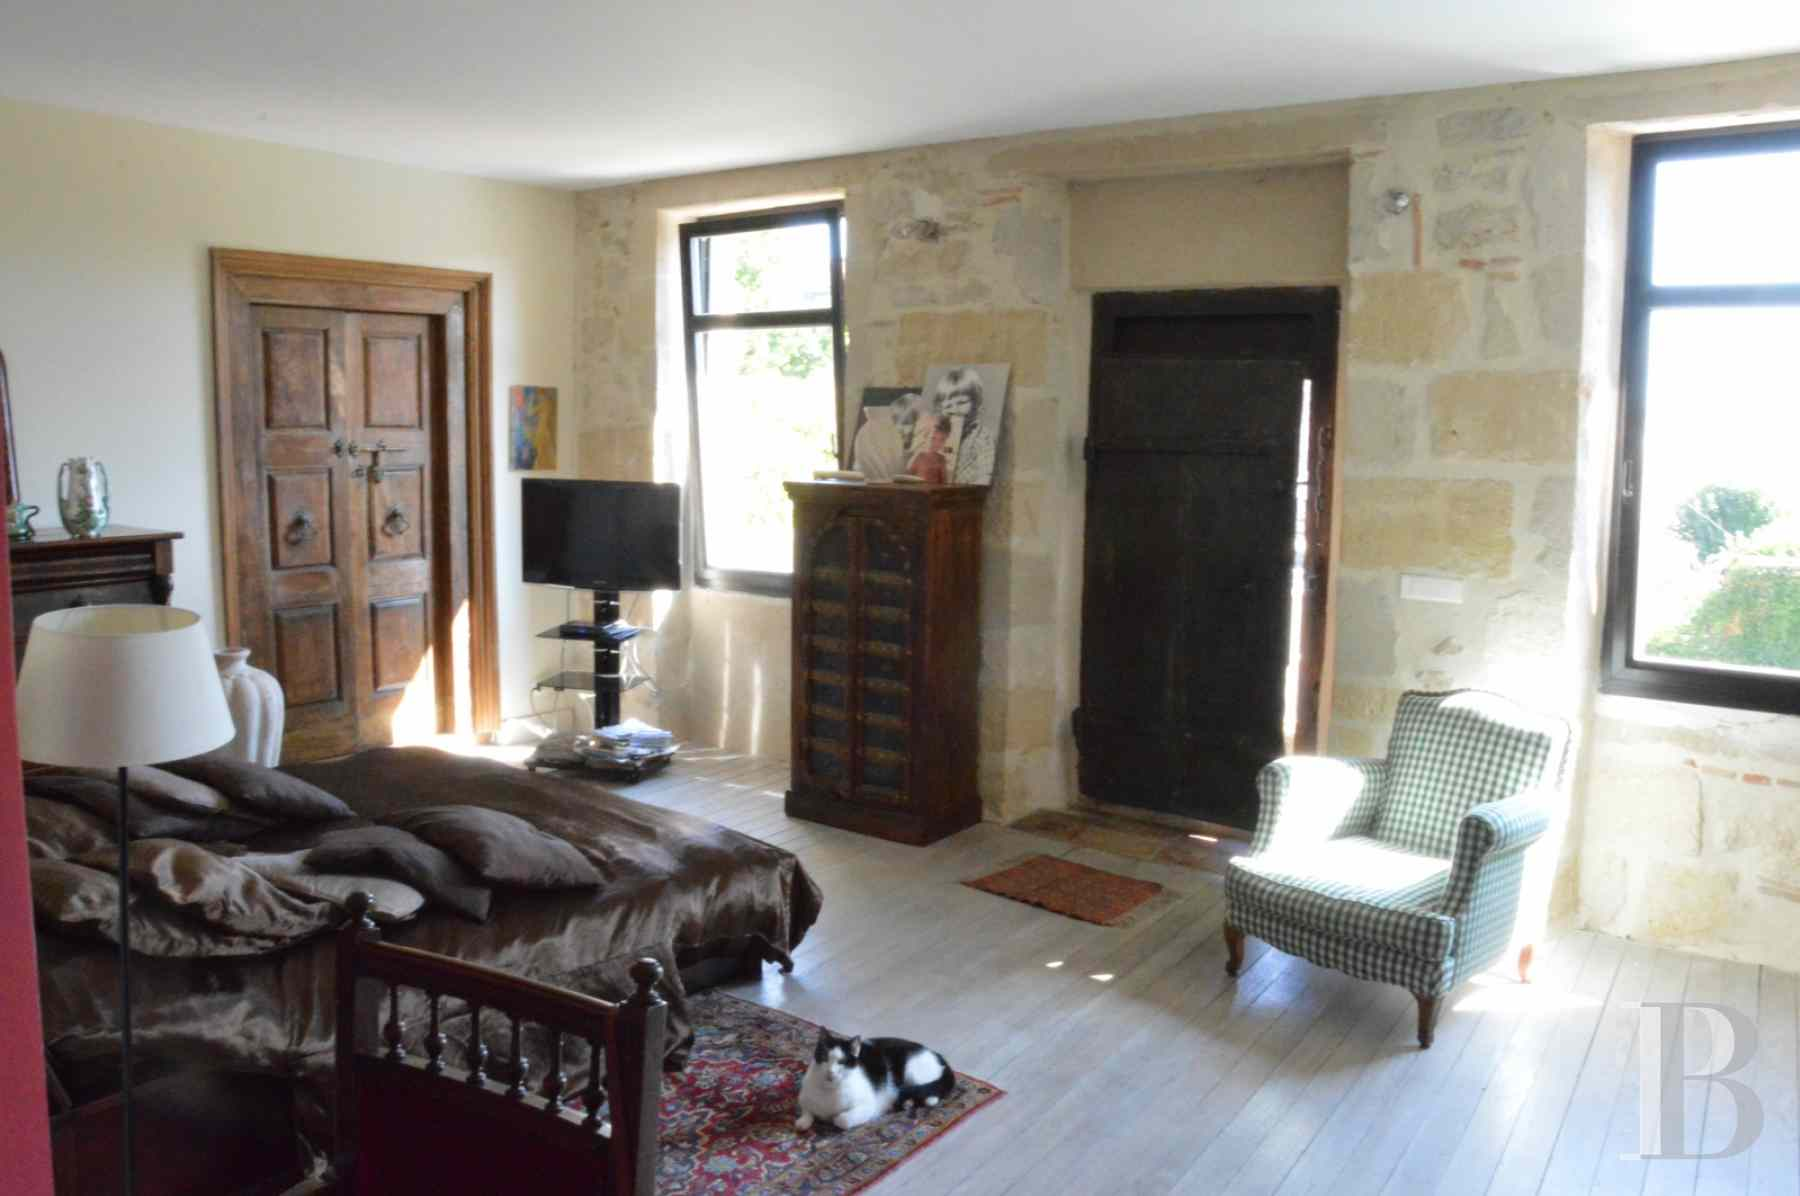 mansion houses for sale France aquitaine bordeaux region - 7 zoom